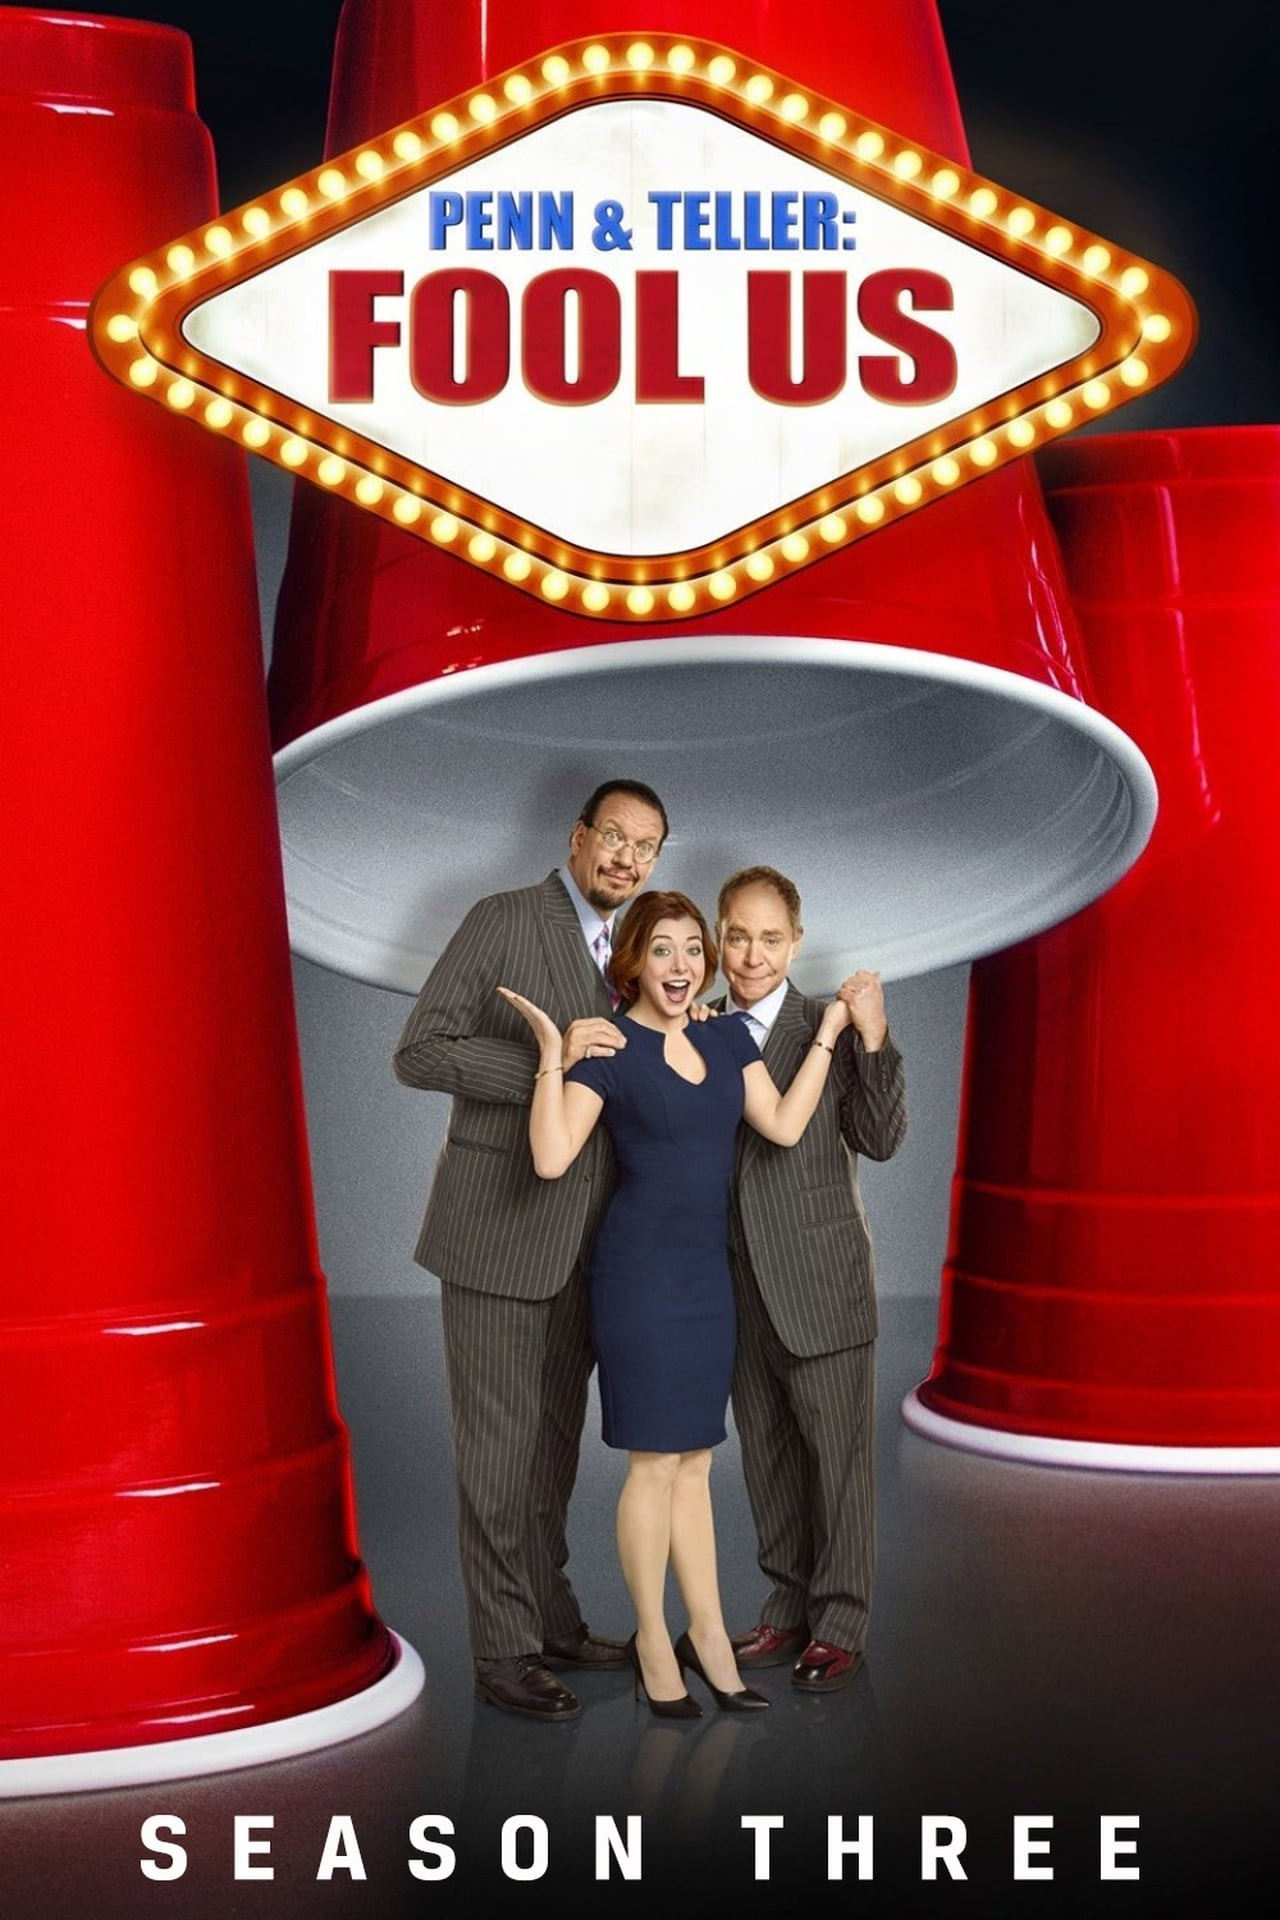 Watch Penn & Teller: Fool Us Season 3 Online